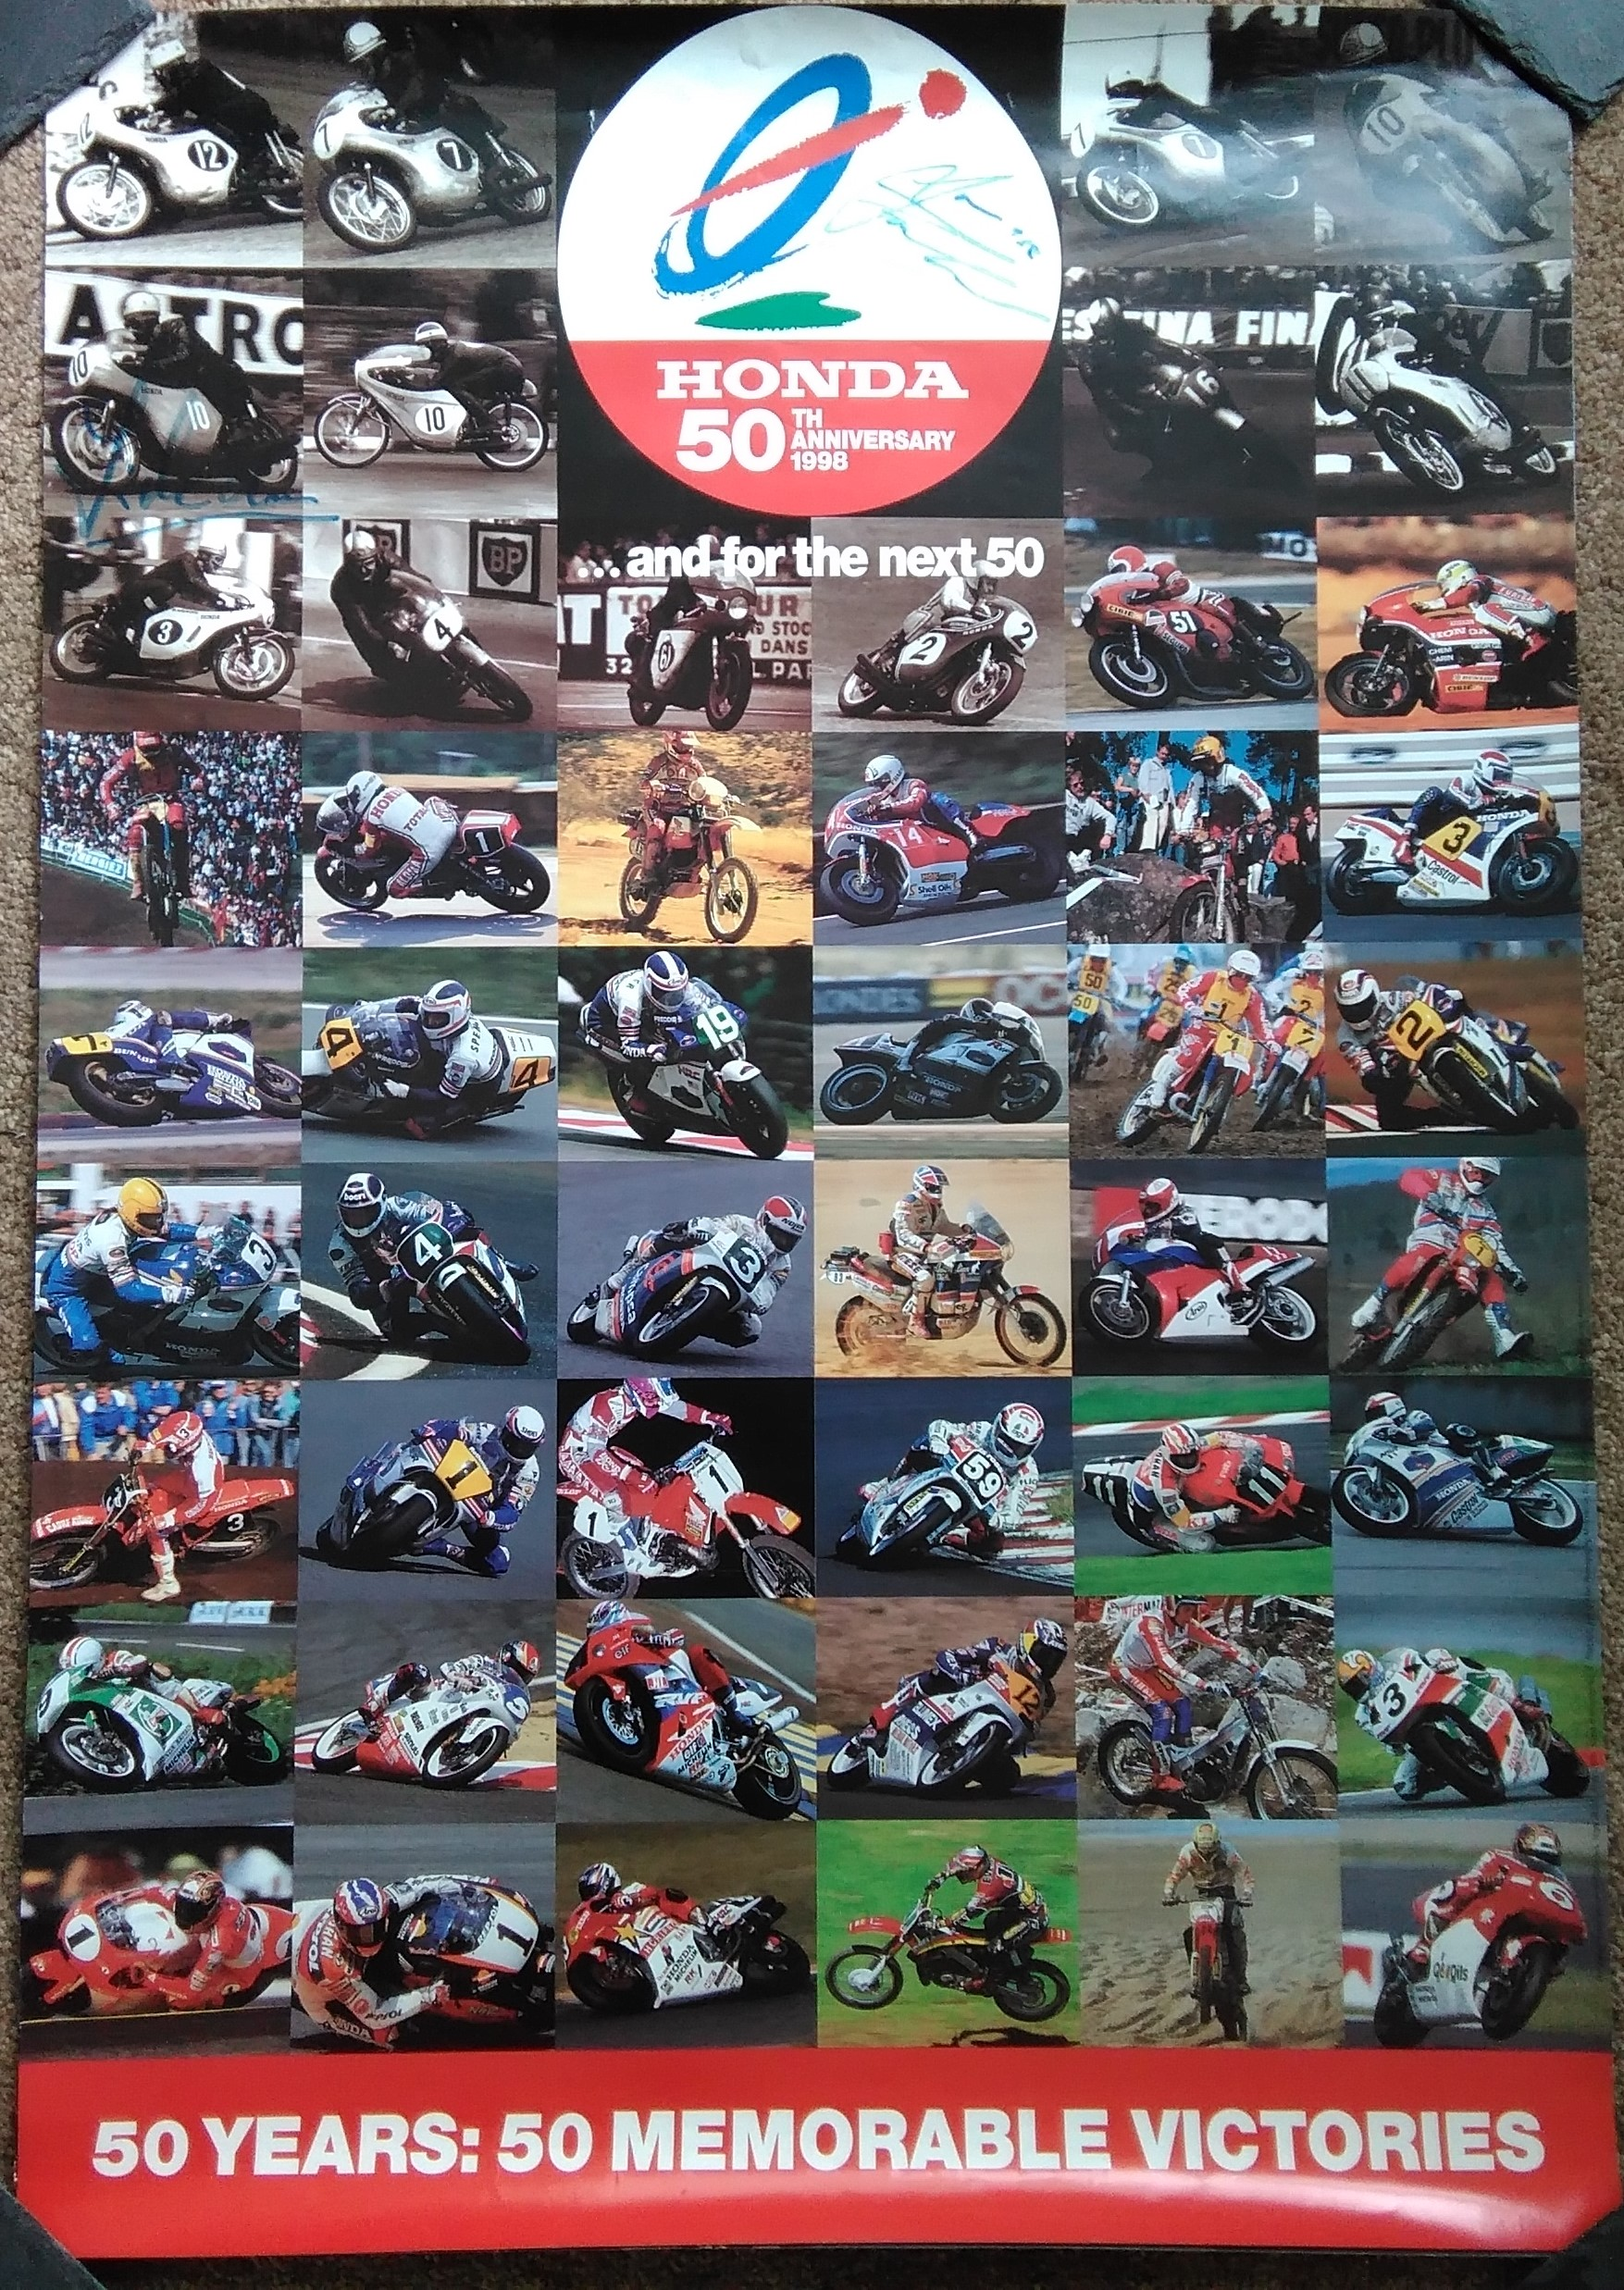 Honda 50 Great Winners during 50 Years Poster